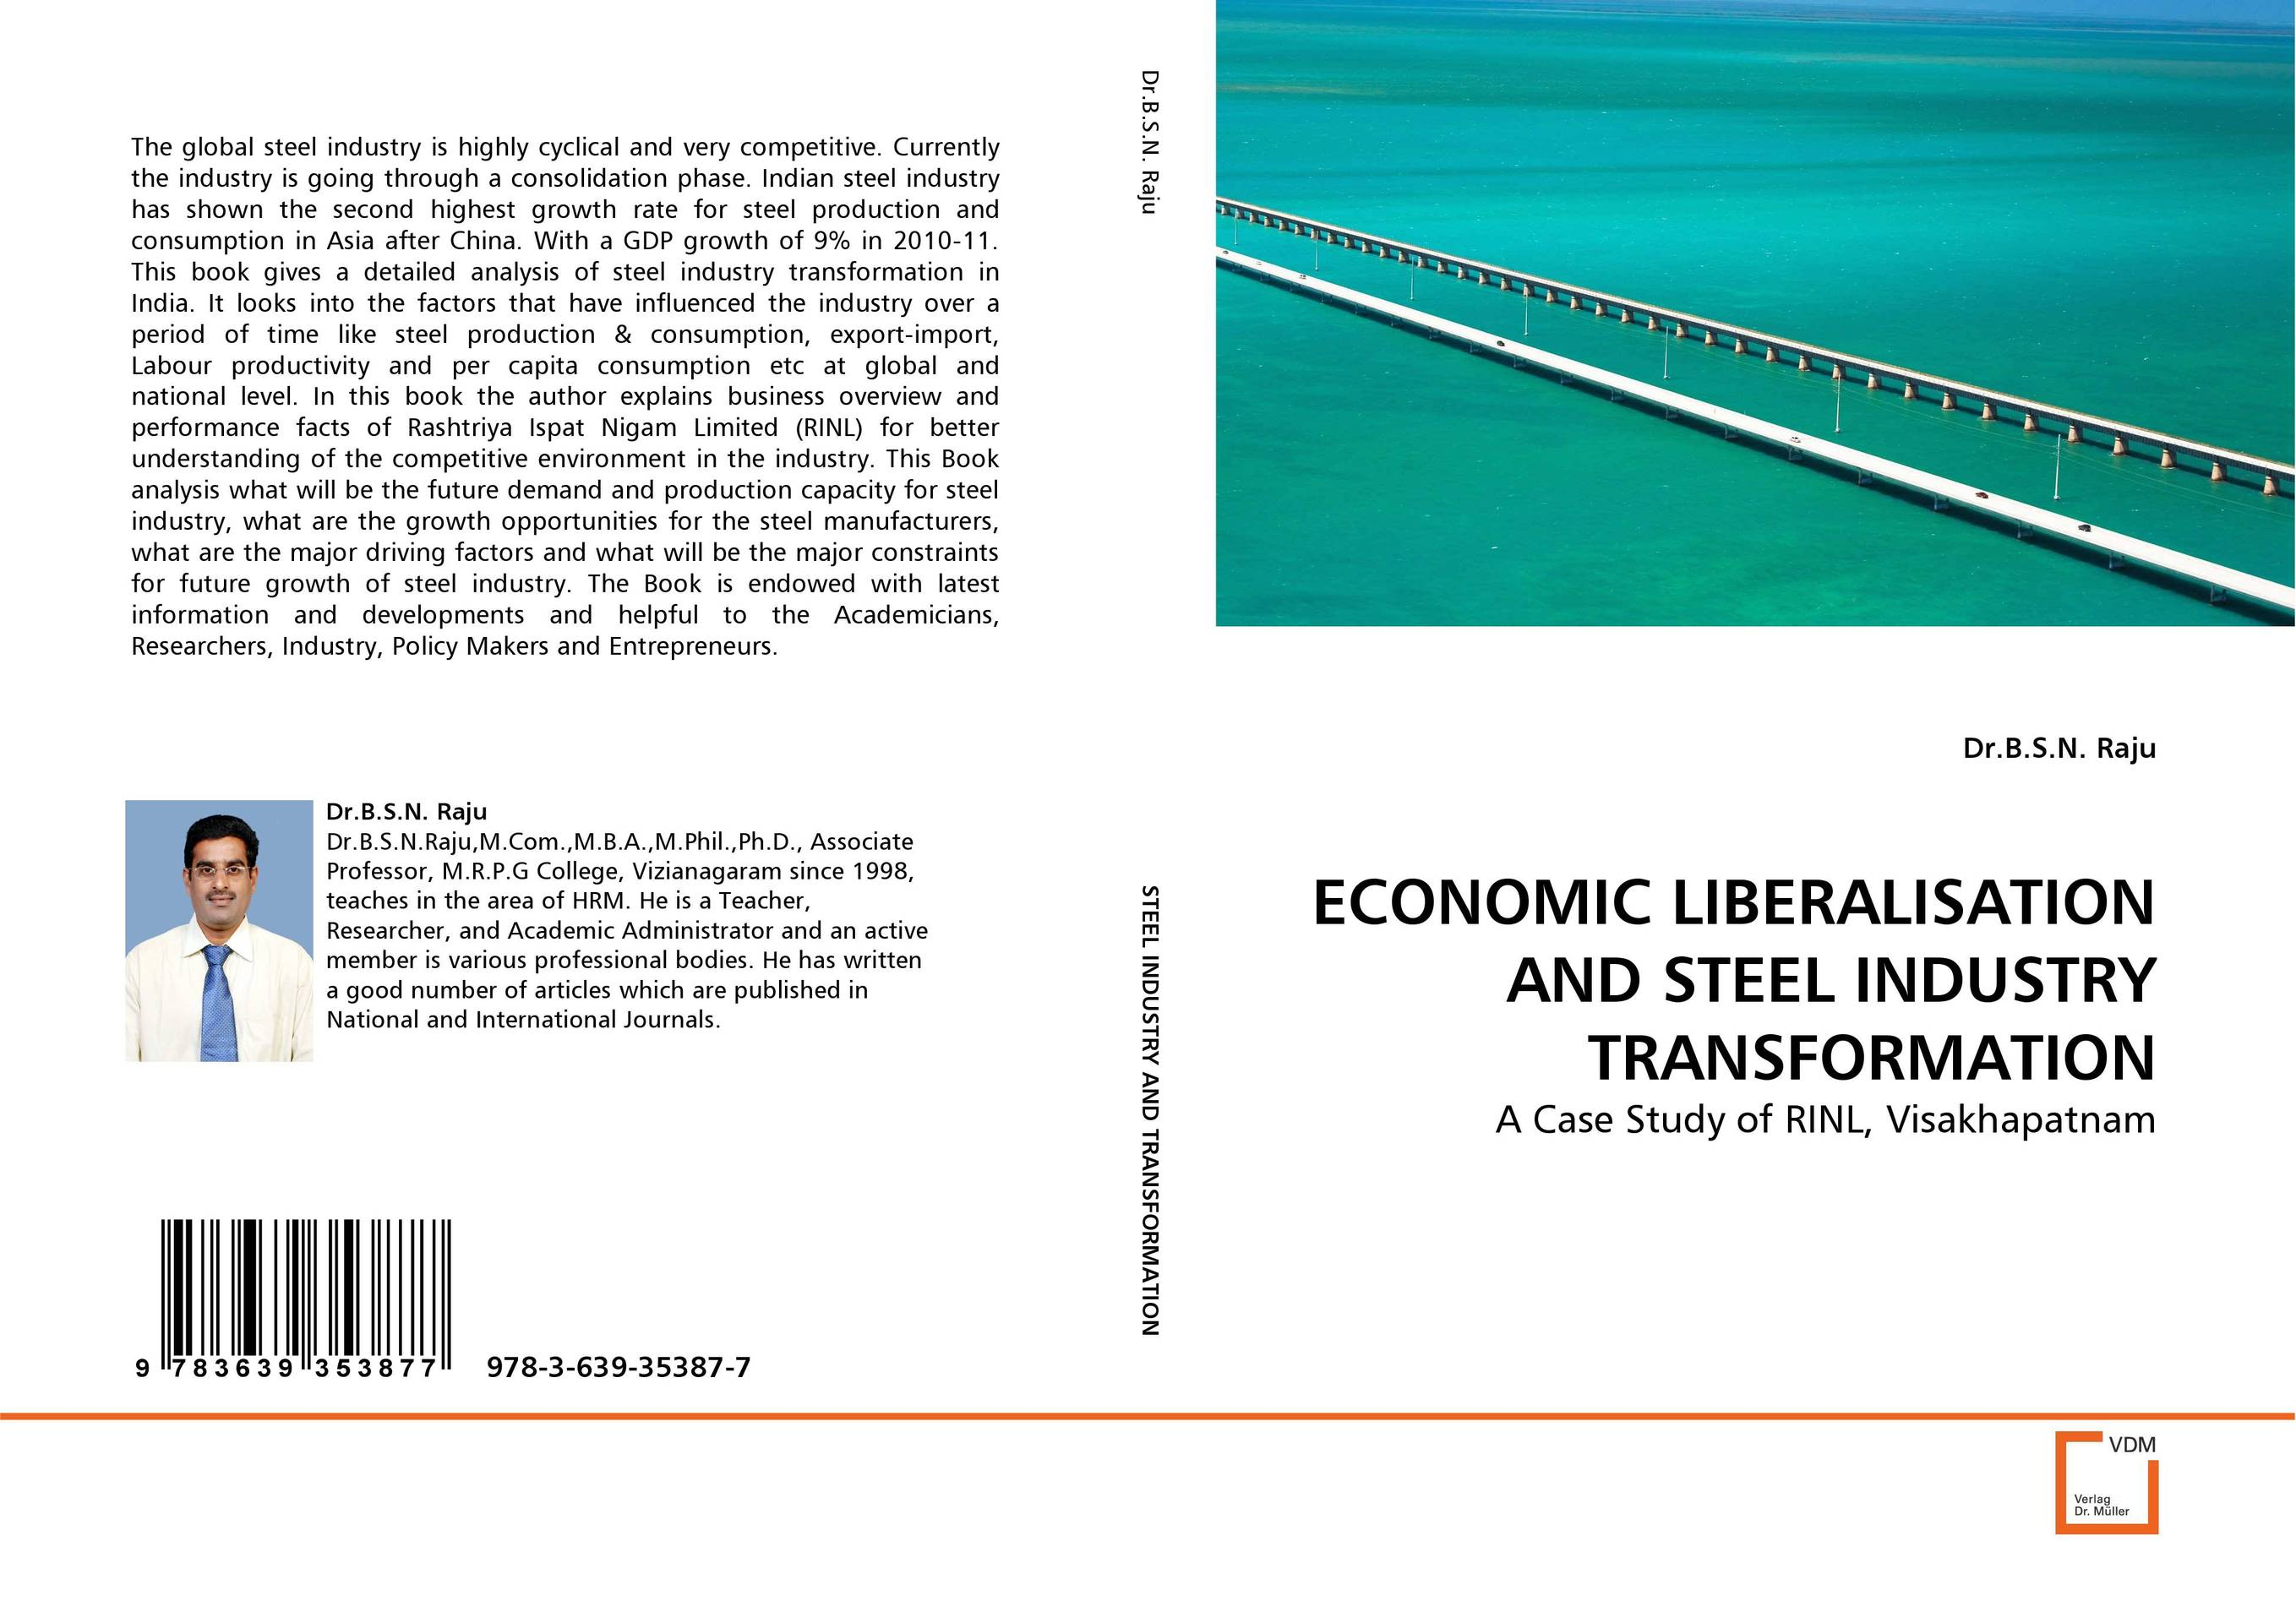 ECONOMIC LIBERALISATION AND STEEL INDUSTRY TRANSFORMATION gender and the growth of the export horticulture industry in kenya